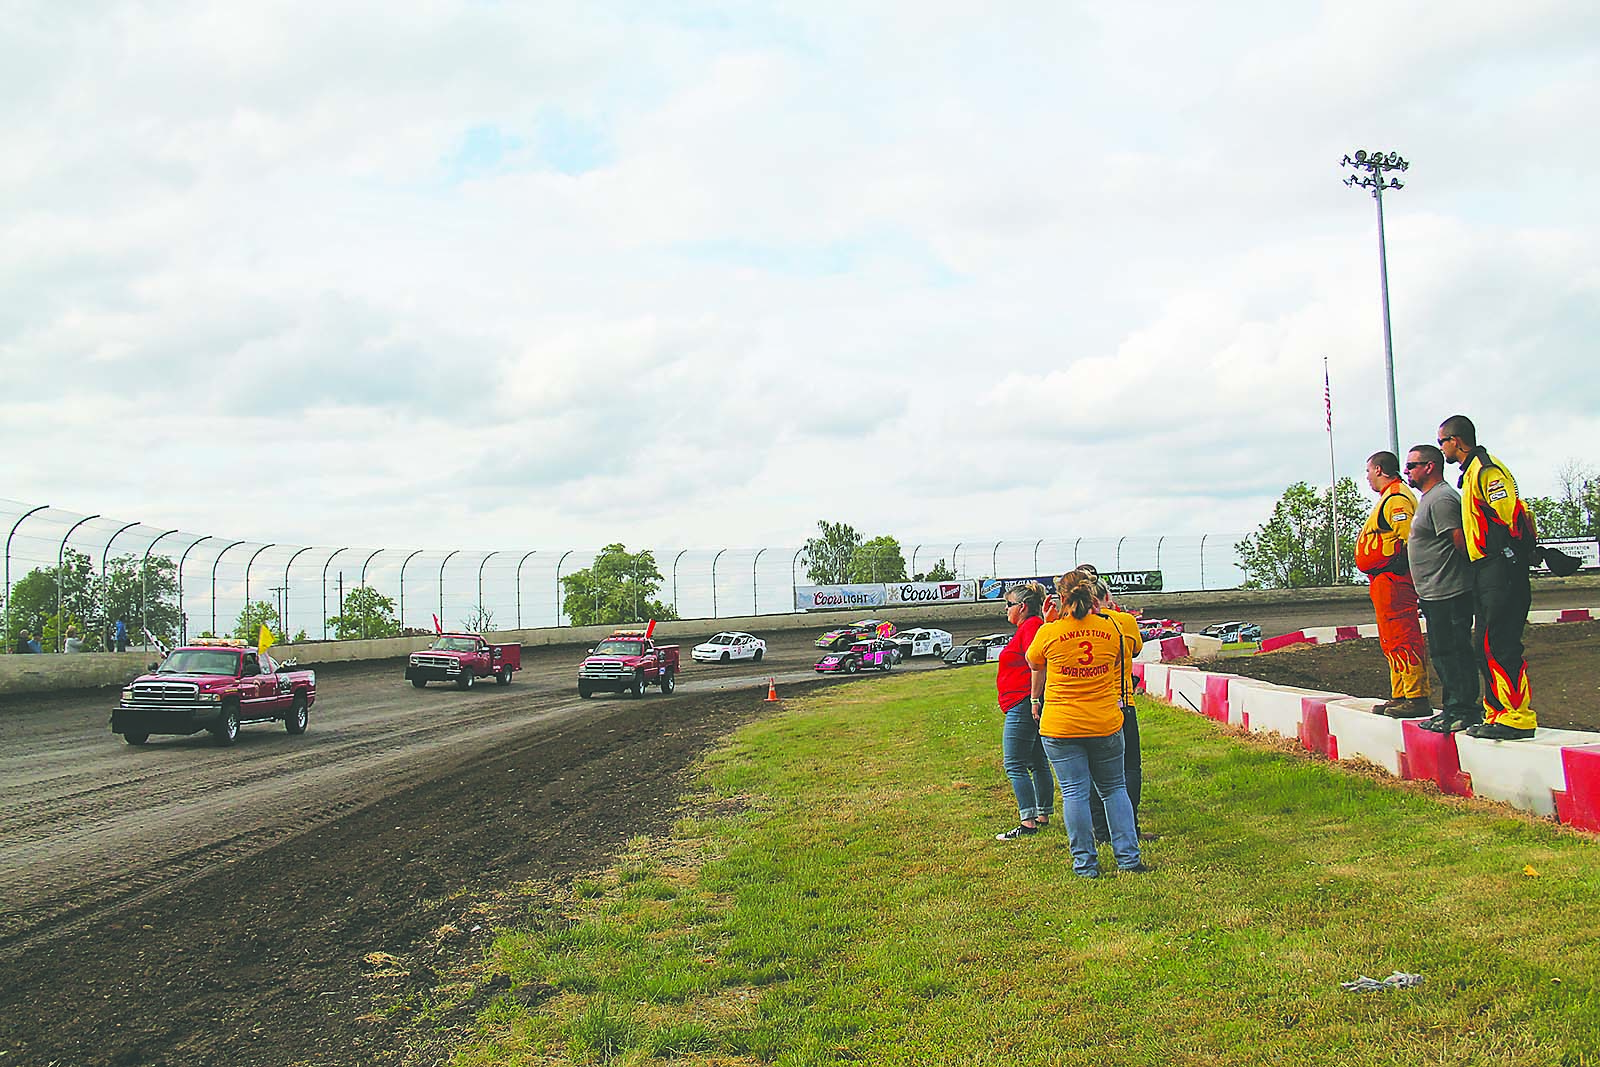 Volunteers provide racetrack safety at Willamette Speedway | Lebanon ...